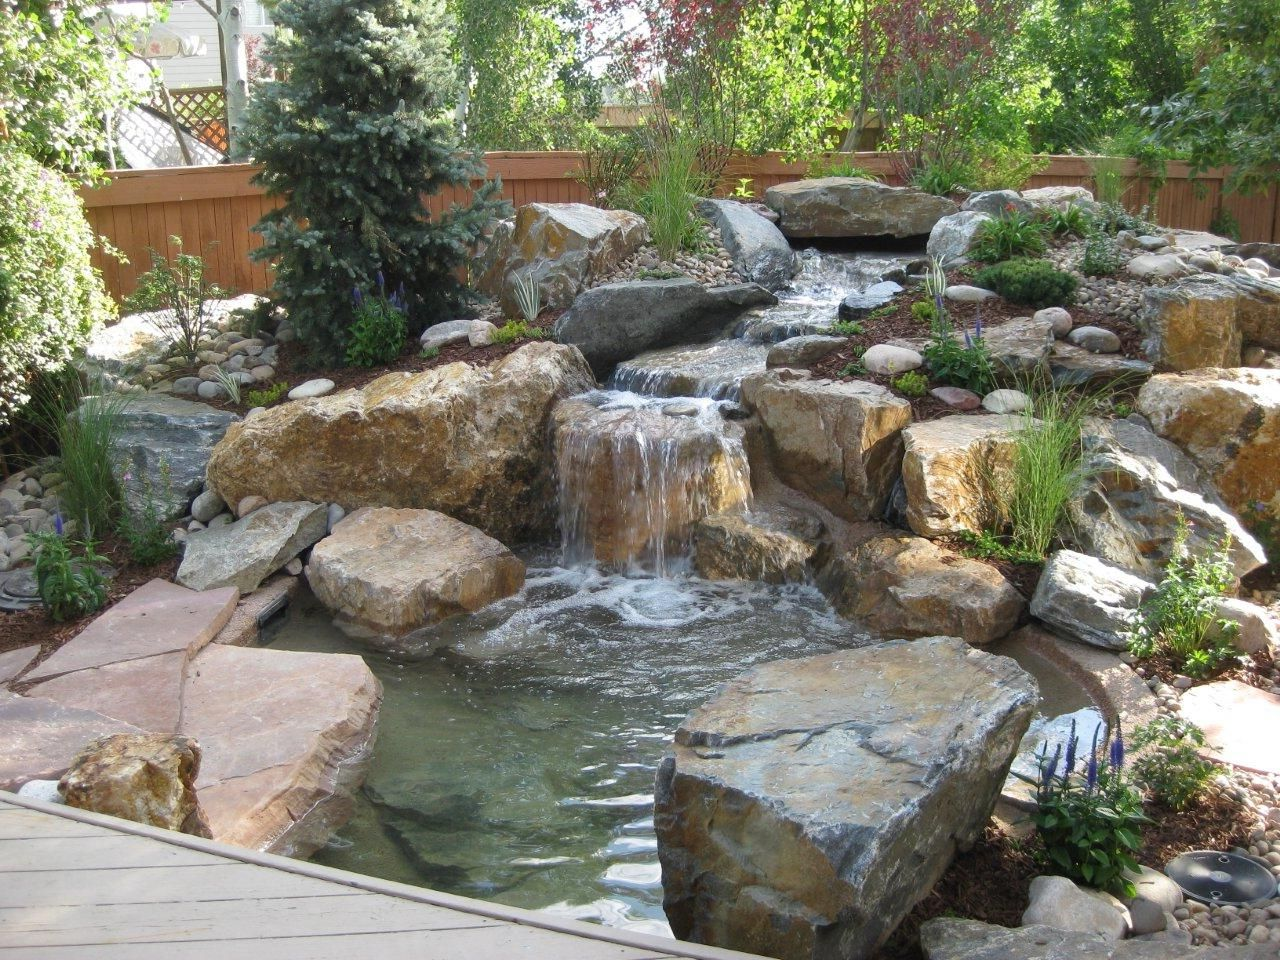 Inspiring Backyard Water Feature Small Pond Grey Rocks